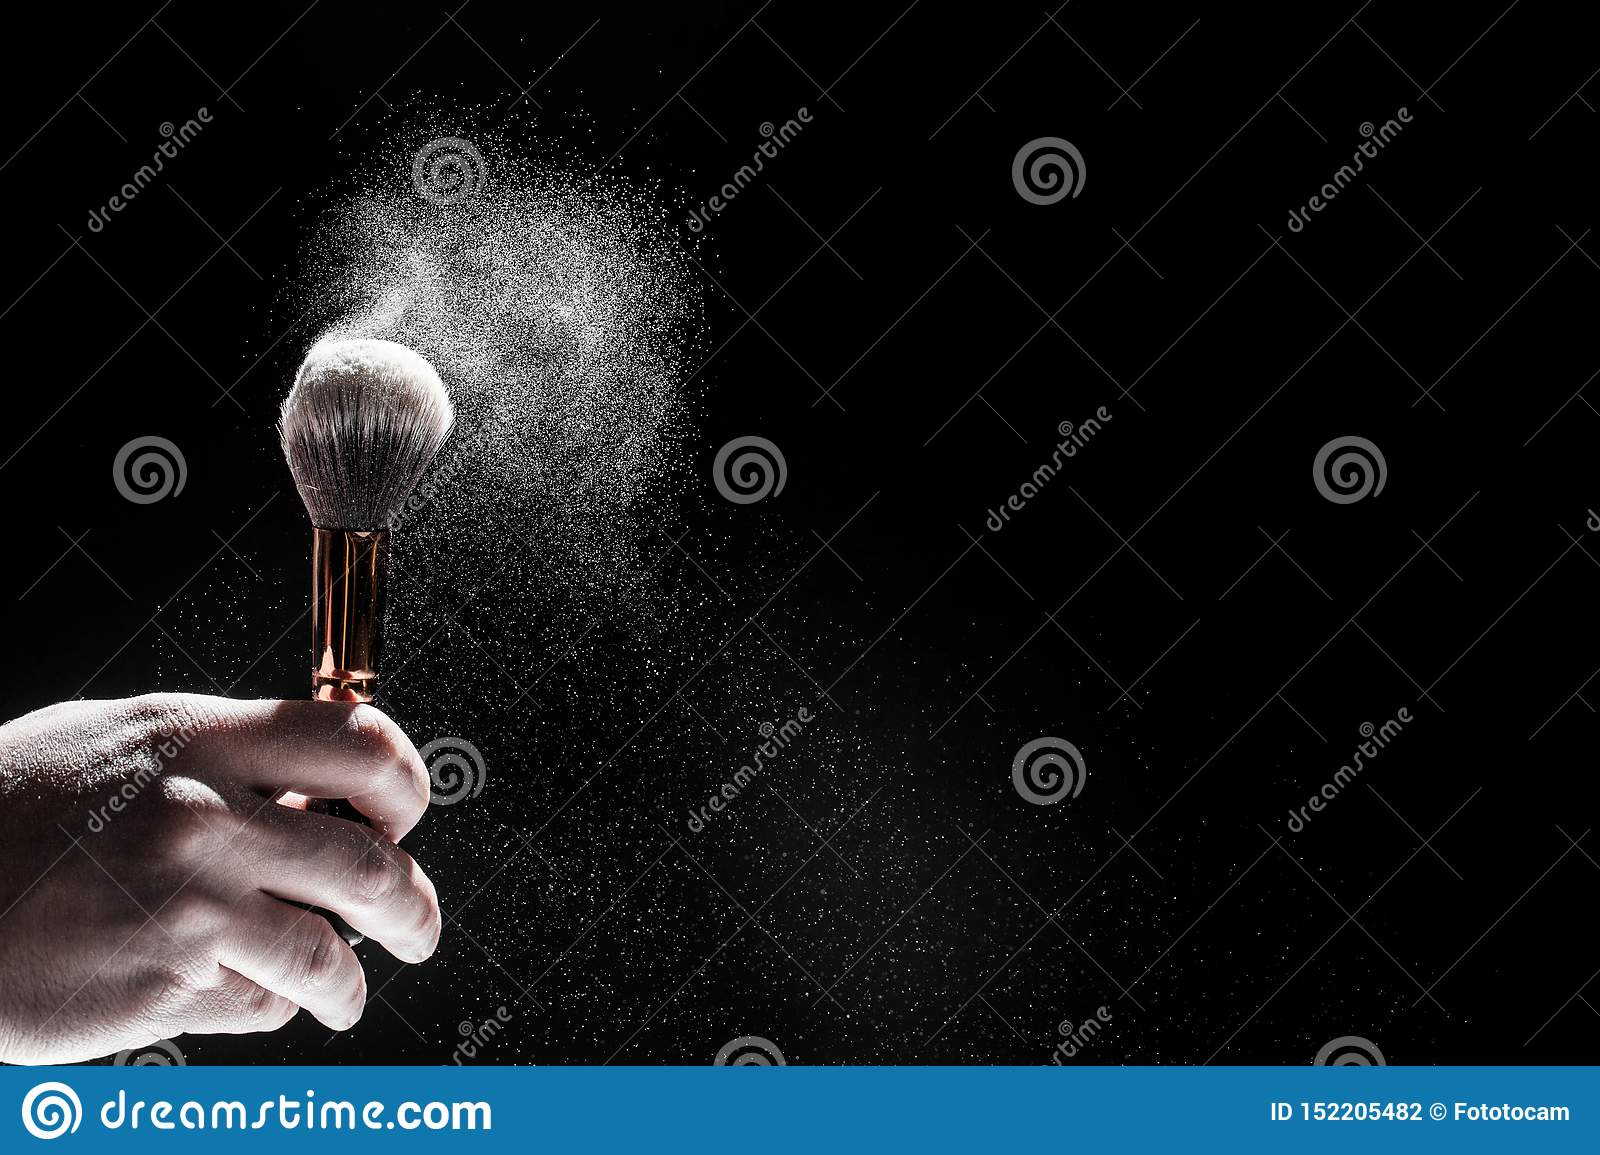 Thick black brush in motion and loose powder particles scattered around